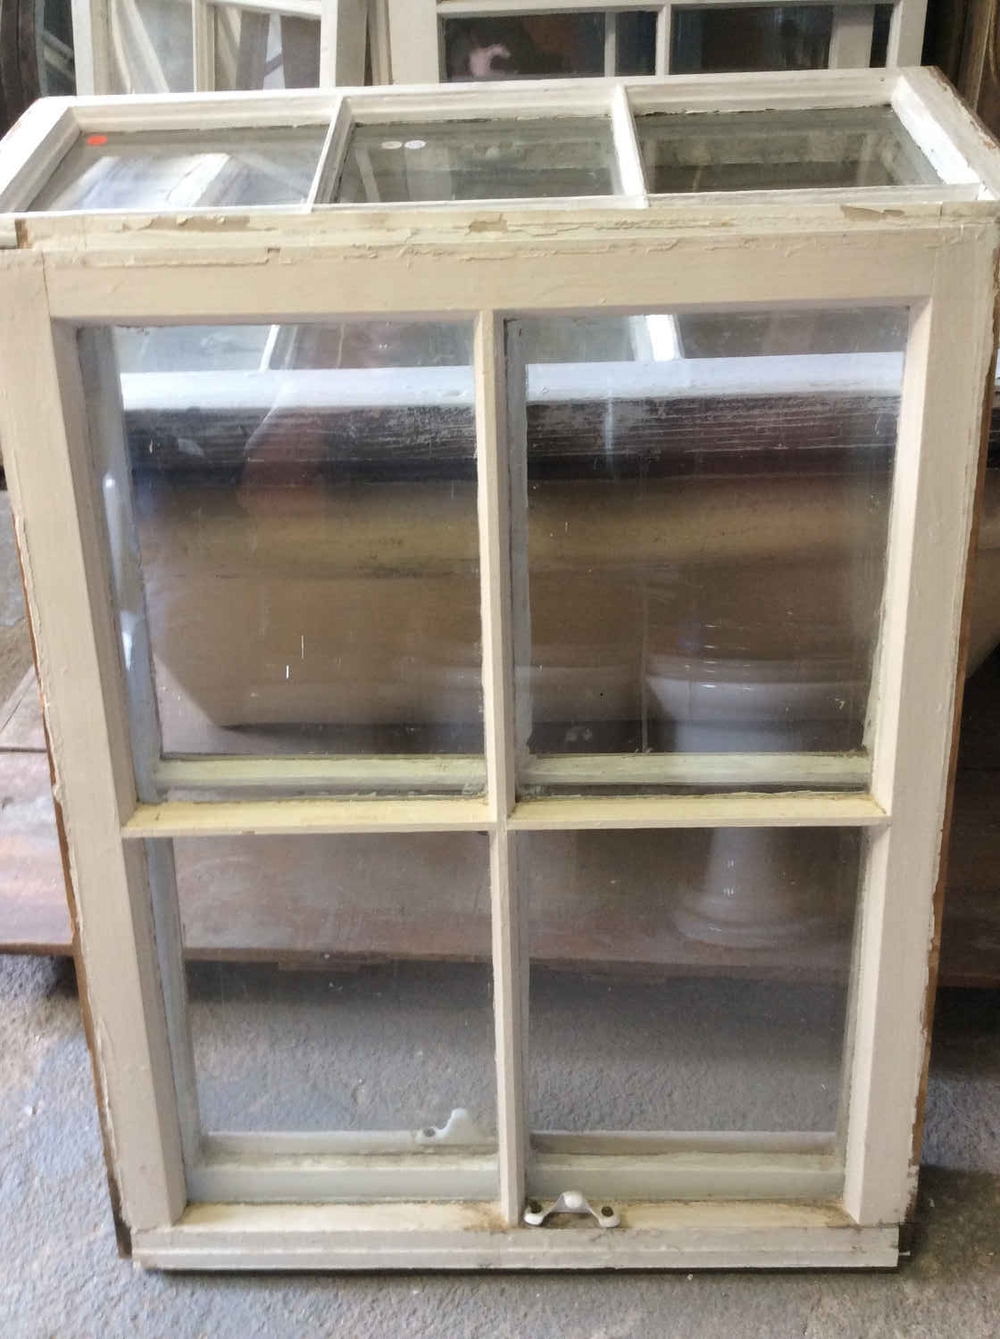 4-Pane Windows